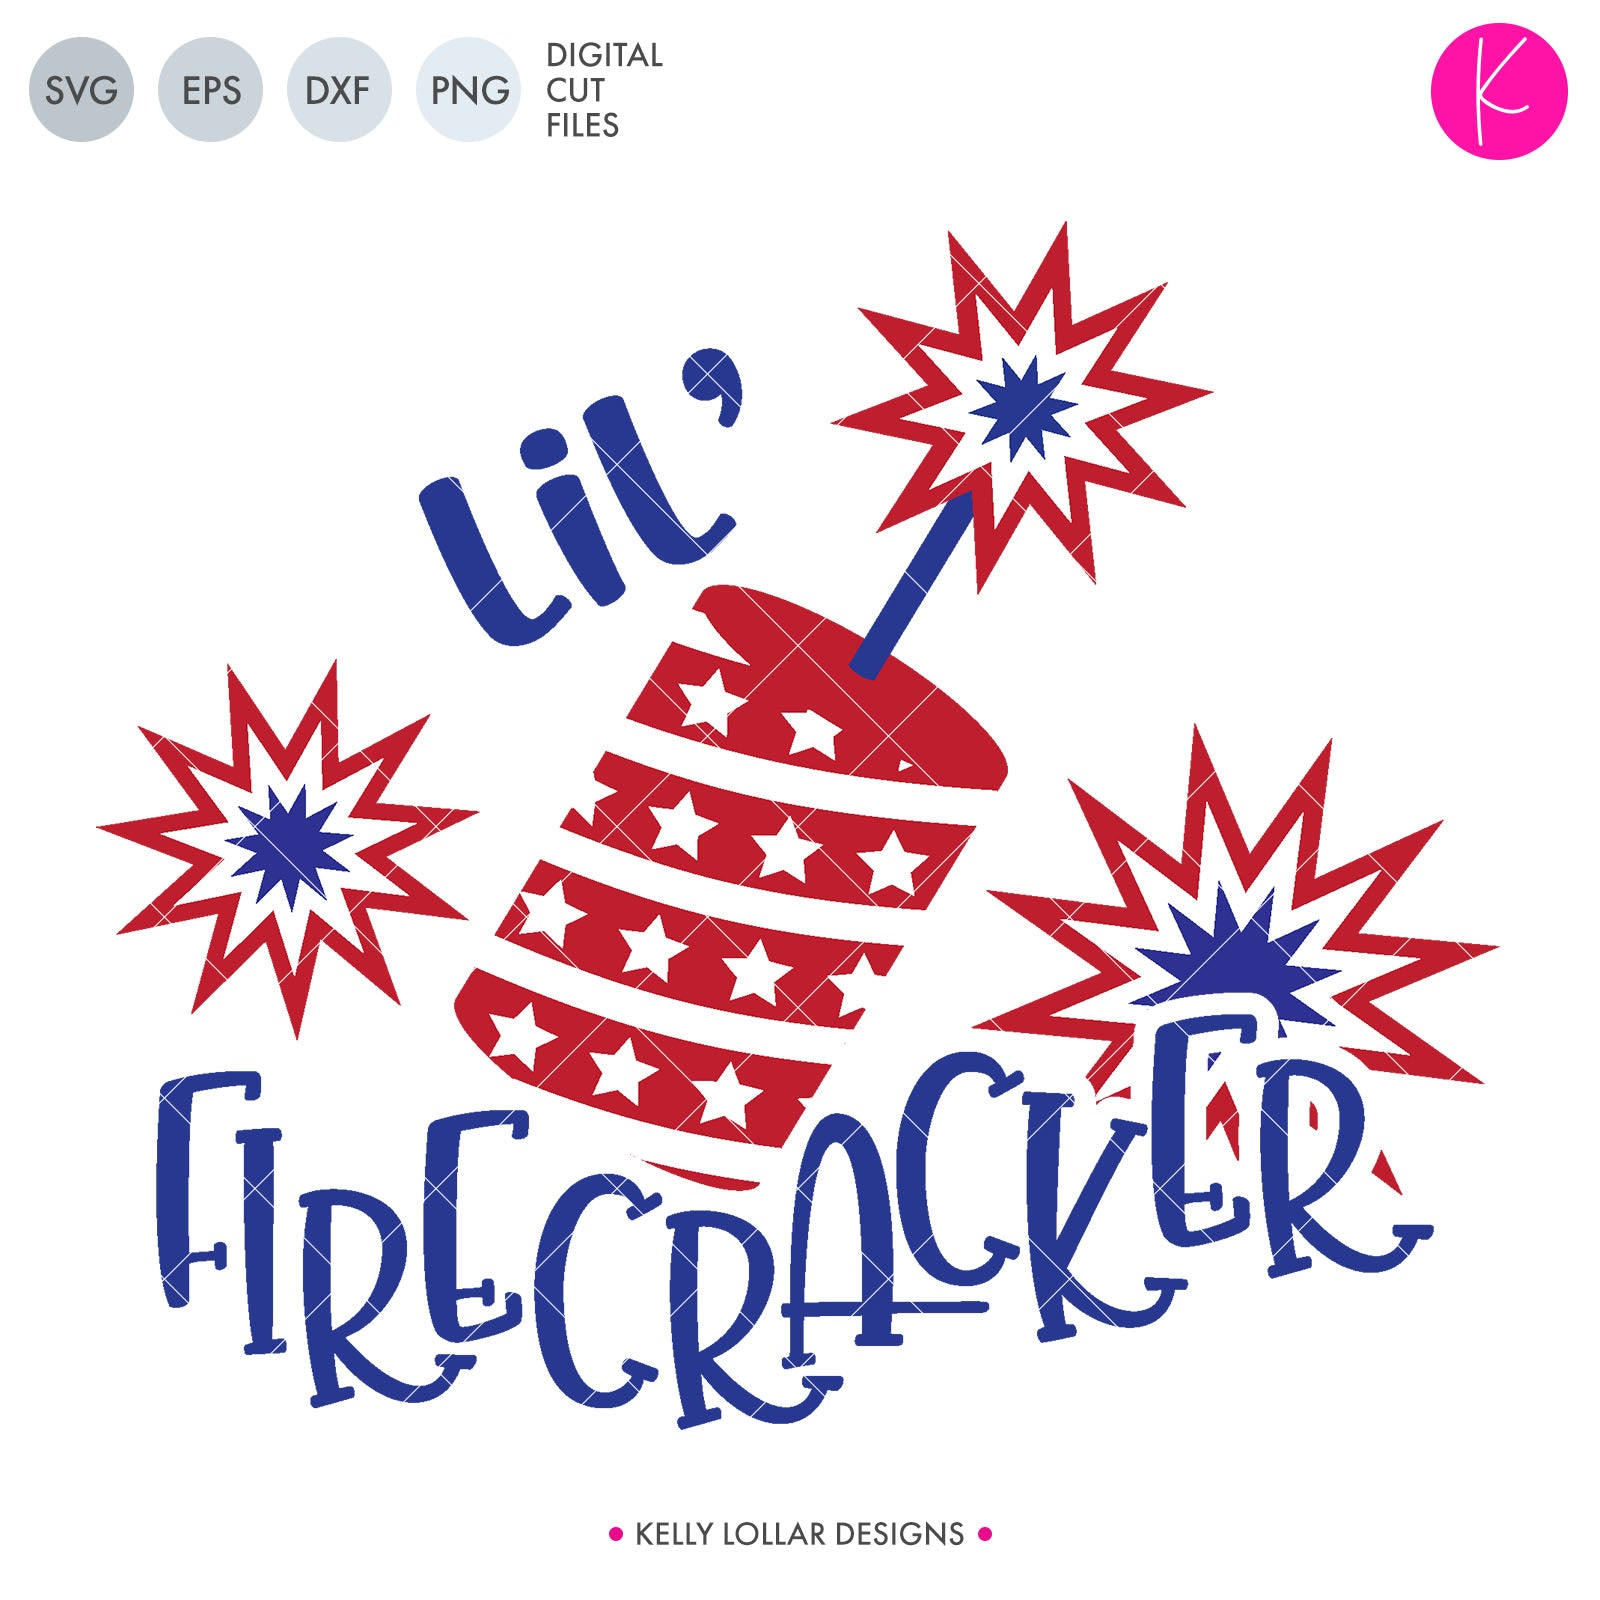 Lil & Big Firecracker SVG Cut File Lil' & Big Firecracker Sibling 4th of July Quote with Firecracker and Flashes | SVG DXF PNG Cut Files INDIVIDUAL 2 files for each format 3-color version for use on color